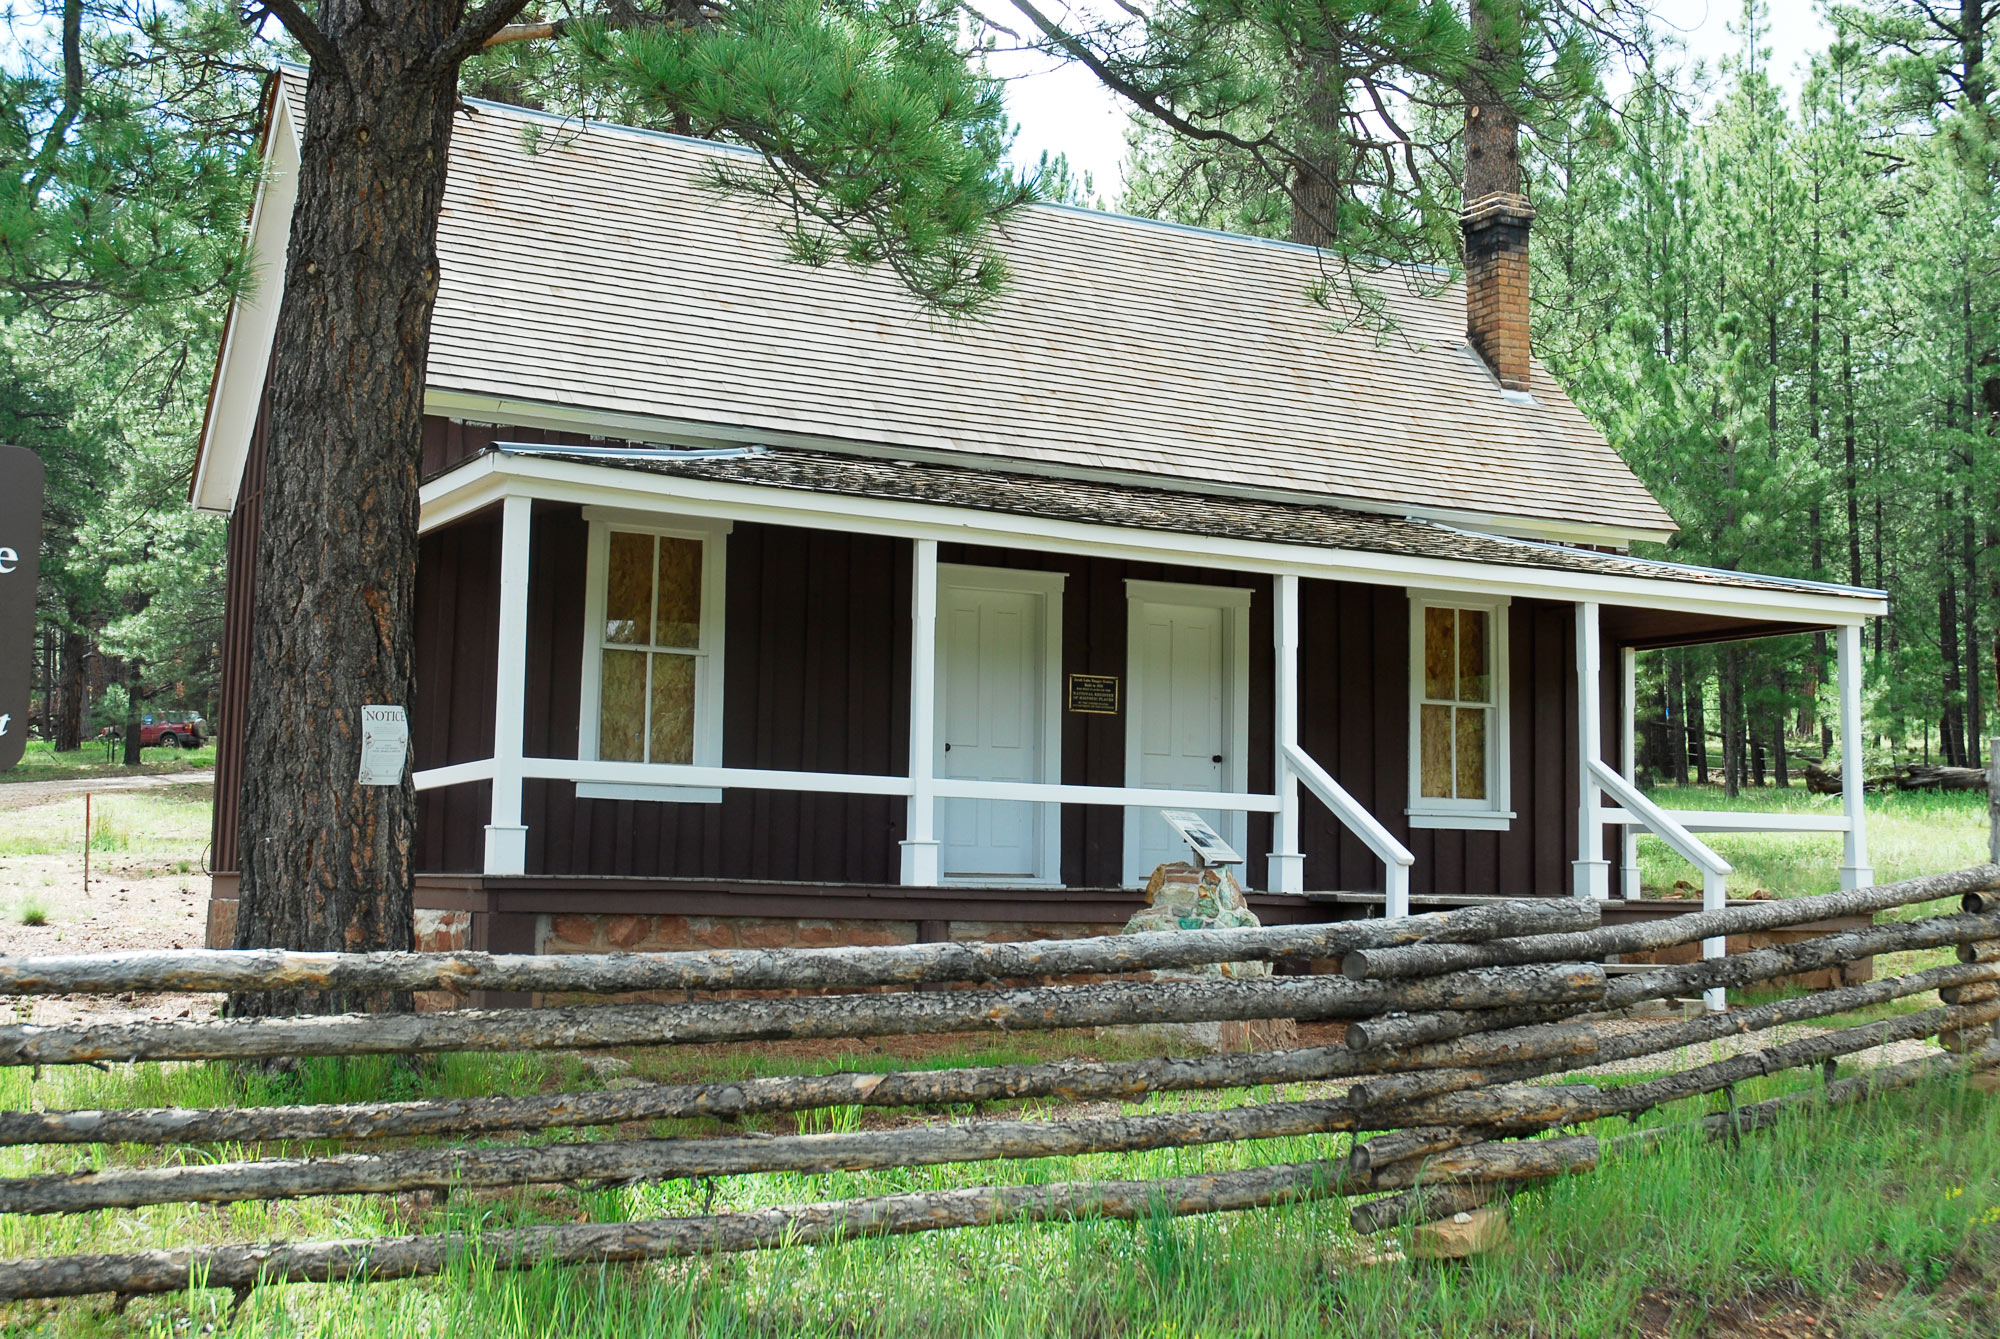 Jacob Lake ranger station, Kaibab National Forest, Arizona, undated. | Photo courtesy of U.S. Forest Service, Southwestern Region, Kaibab National Forest, St. George News